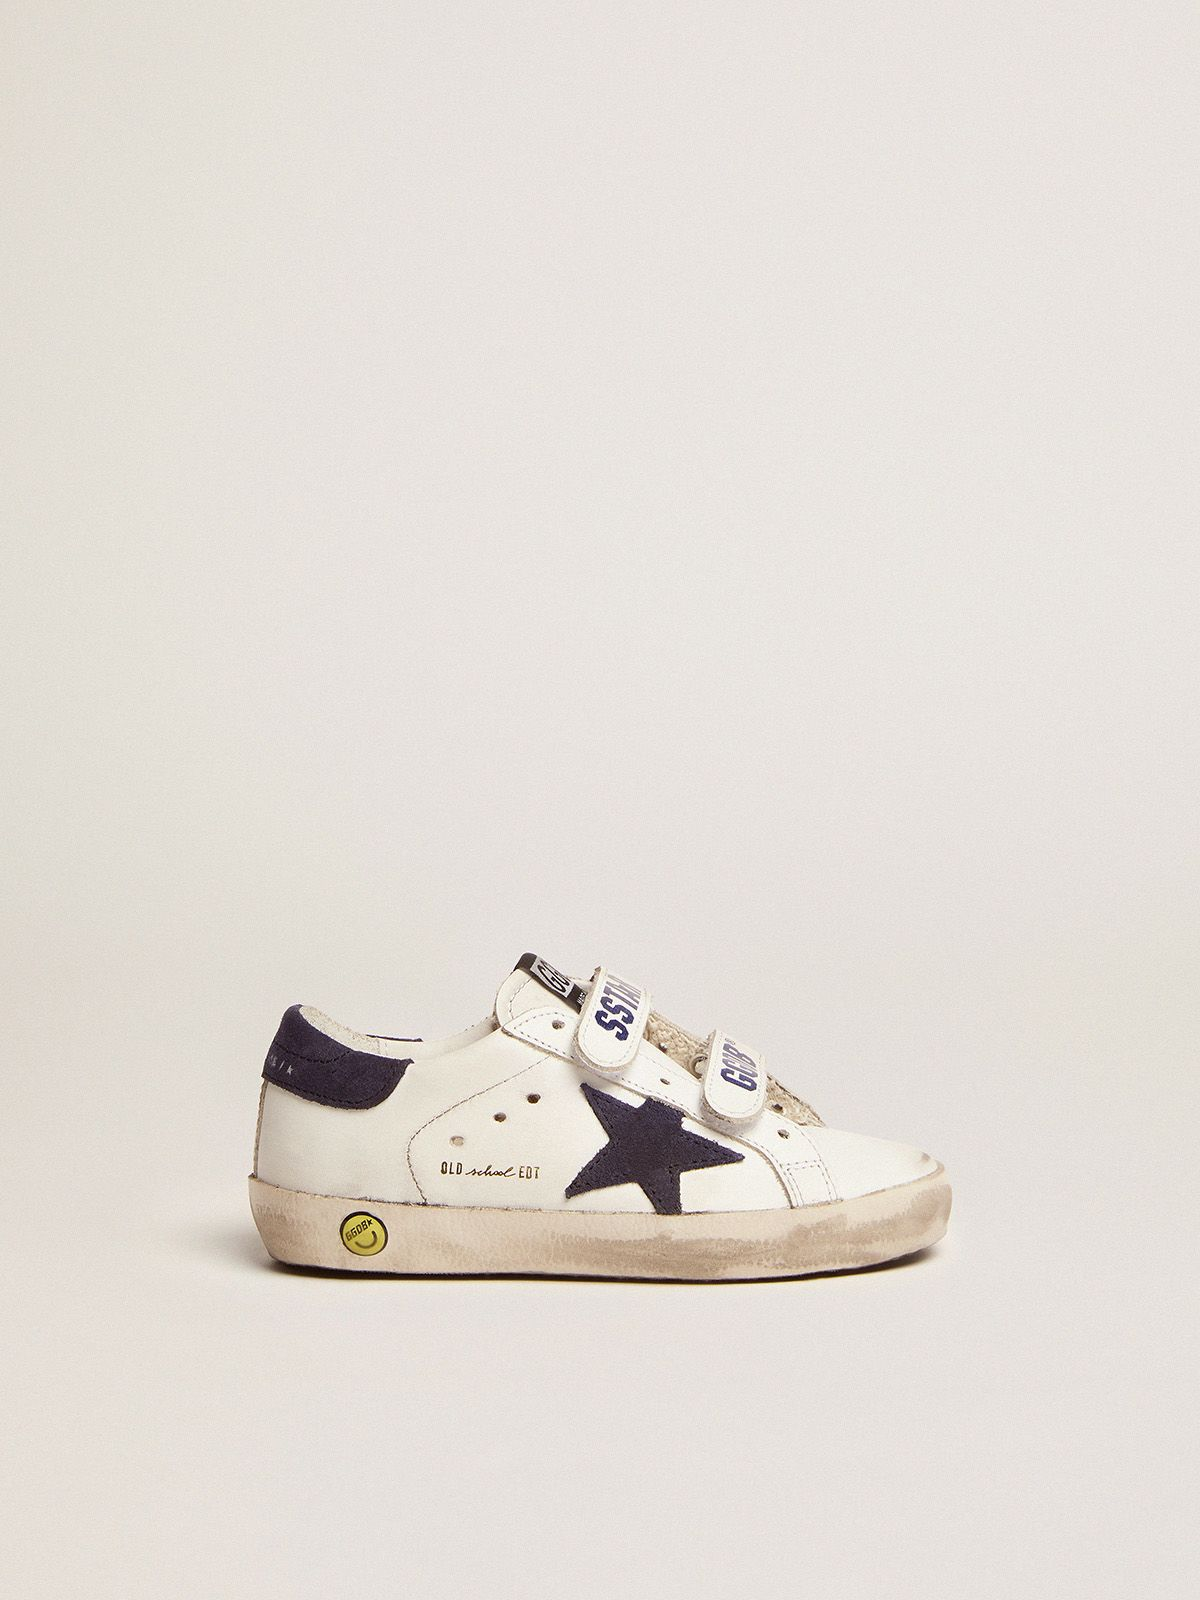 Old School sneakers in leather with suede star and heel tab